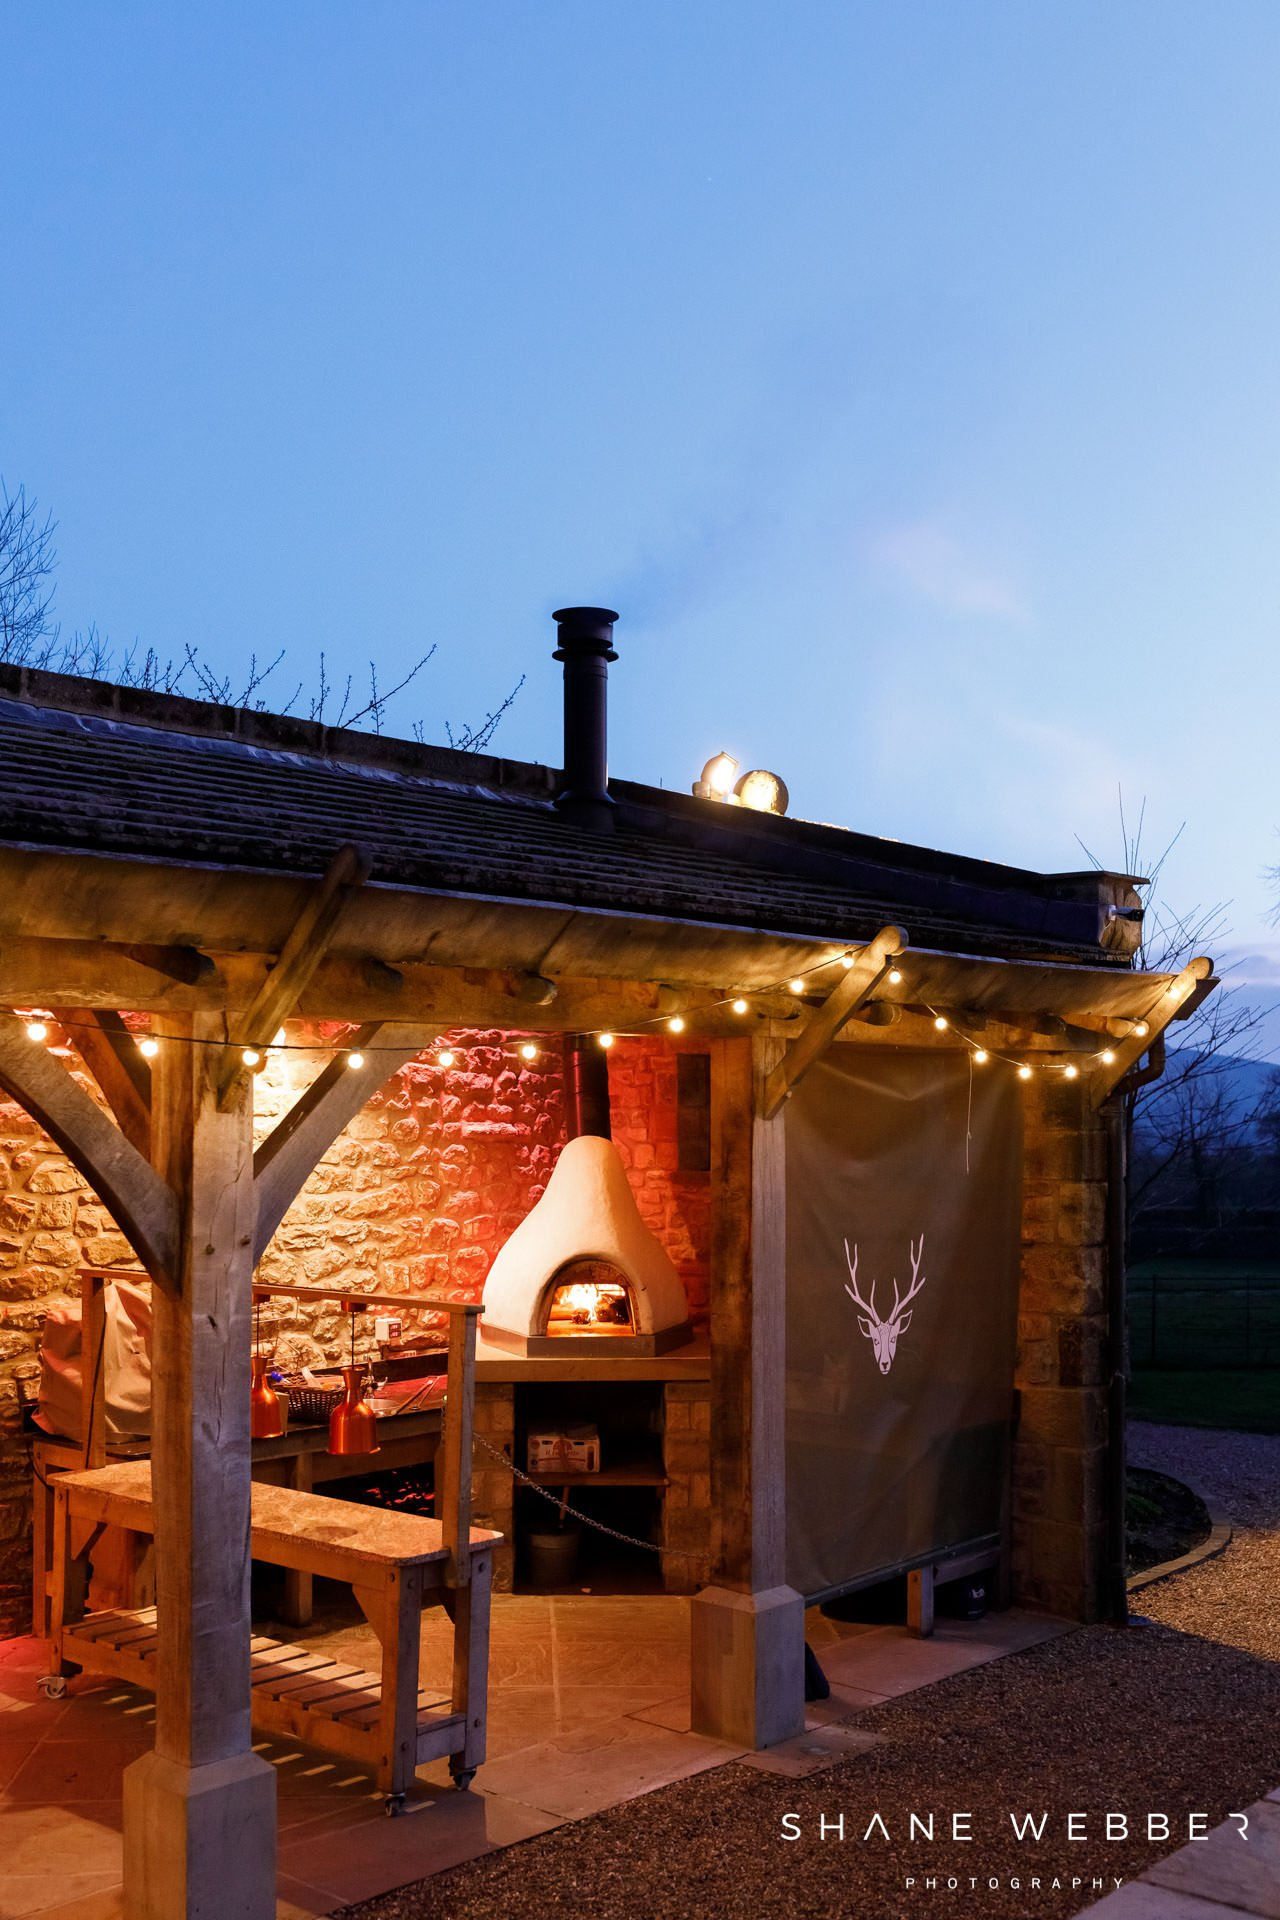 Pizza oven at Browsholme Hall